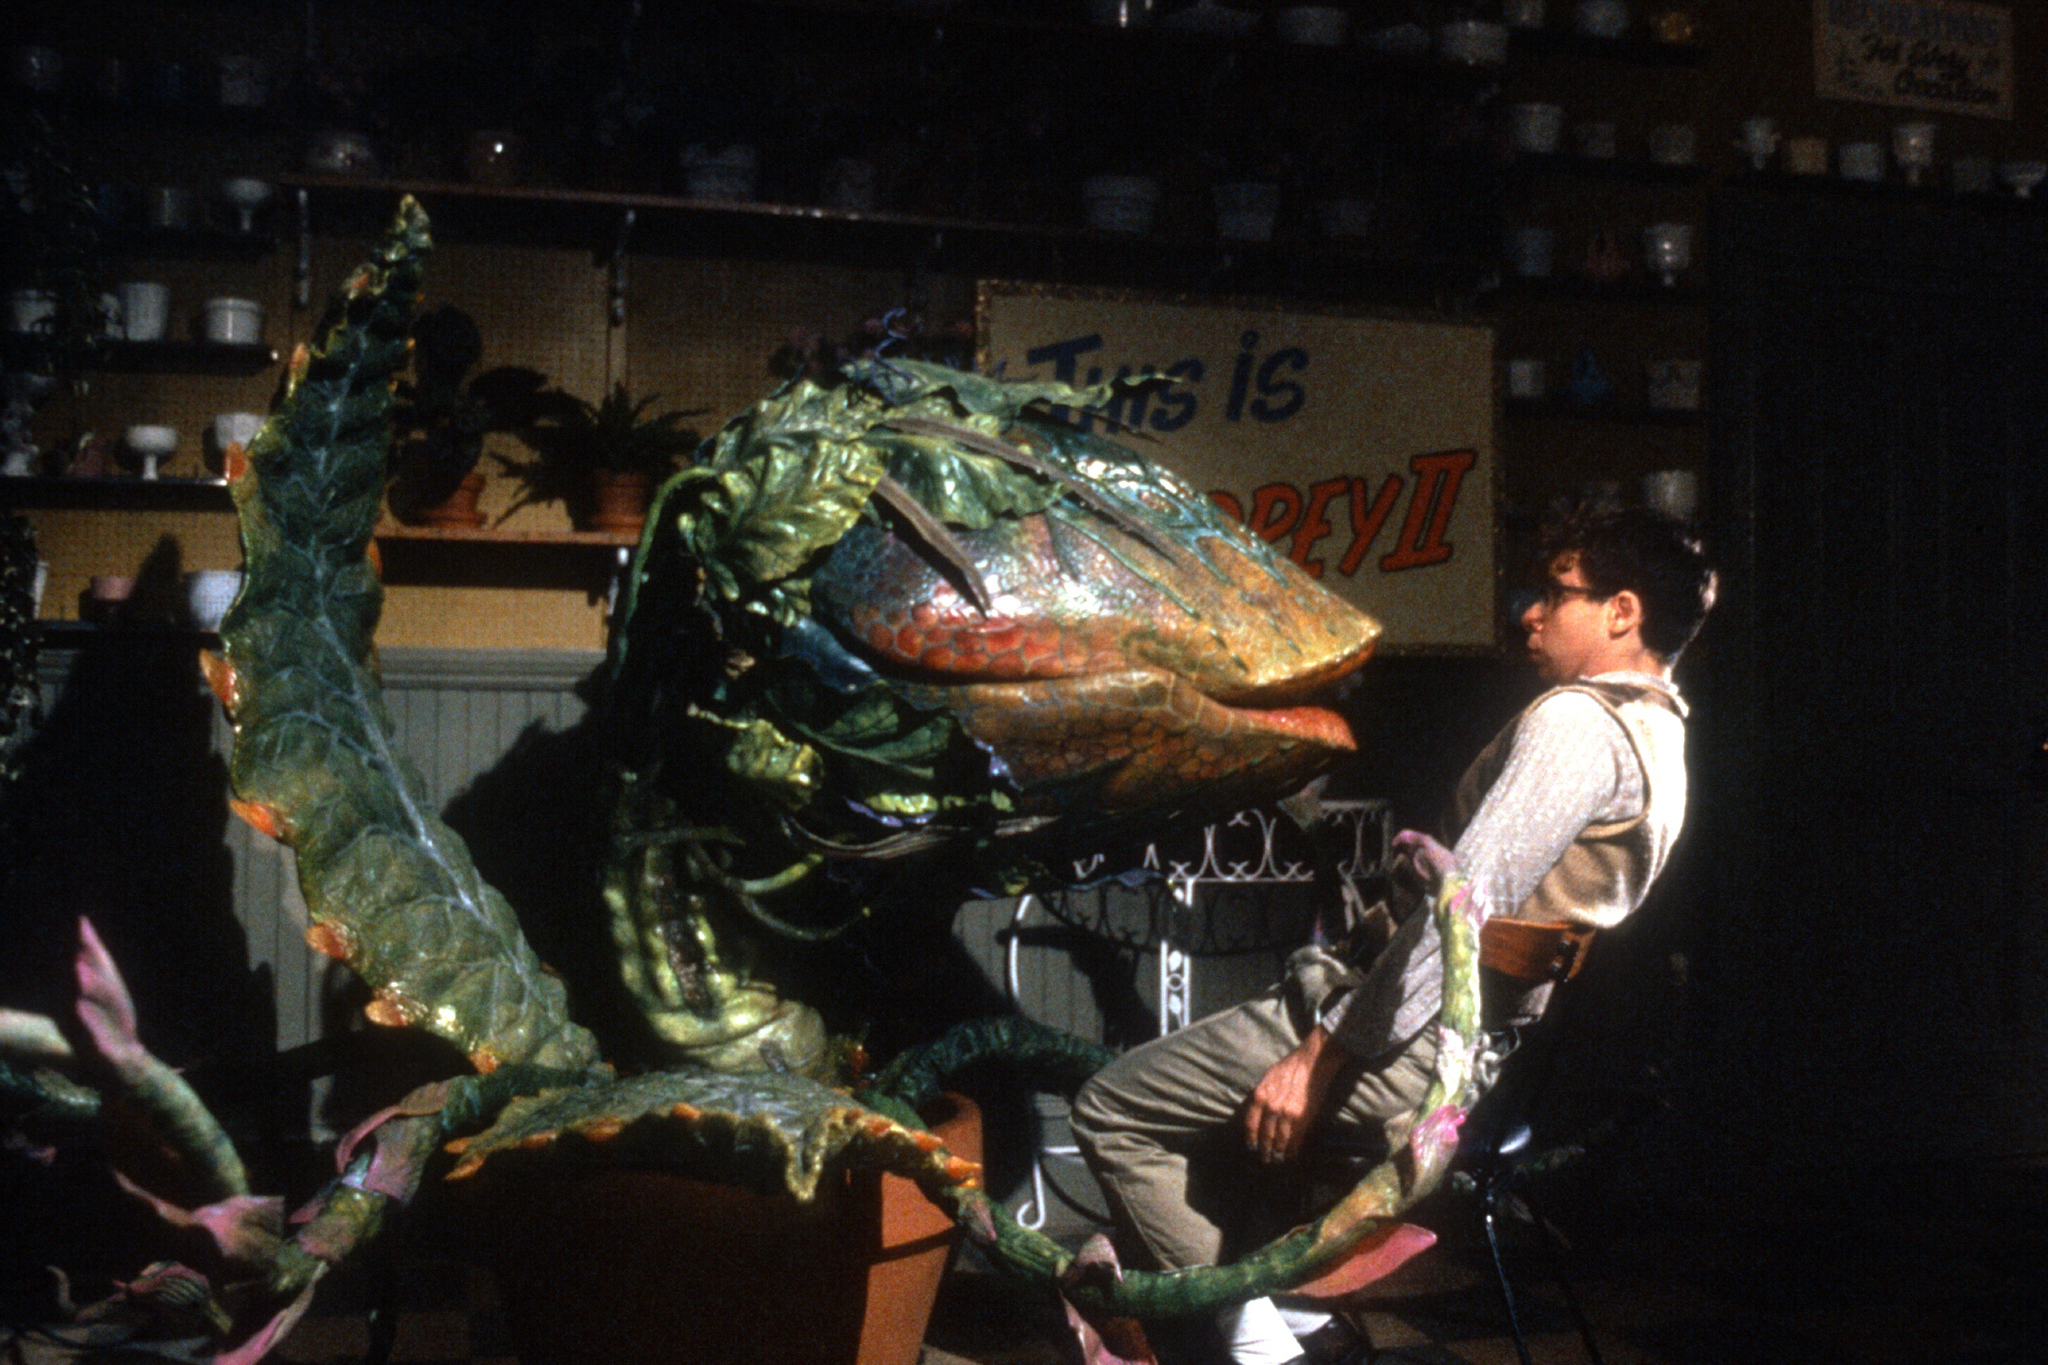 12 25 Things You Never Knew About Little Shop of Horrors